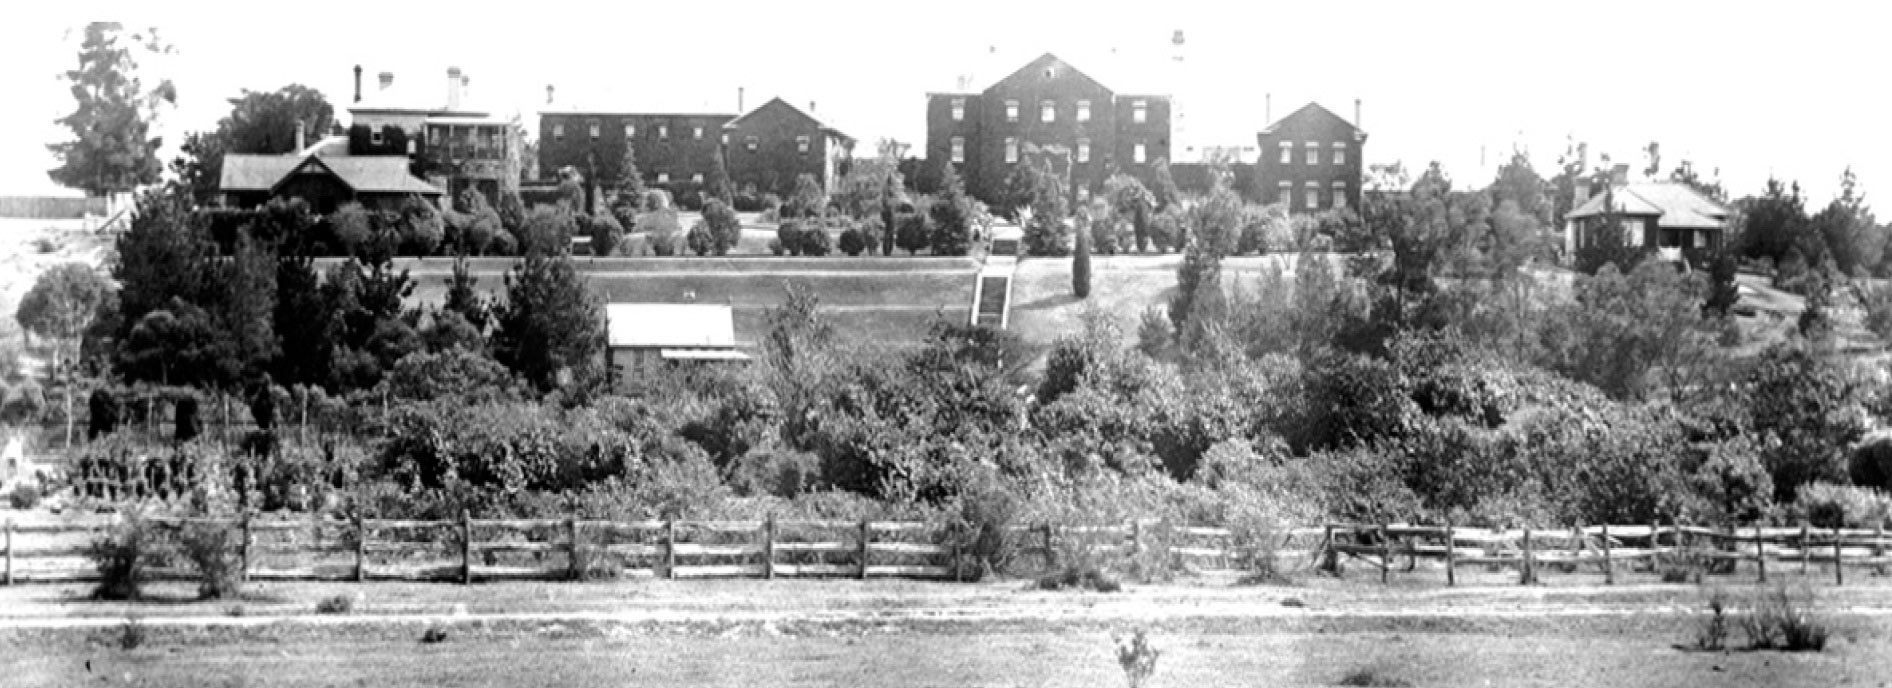 Rydalmere Psychiatric Hospital, around 1900 from Camelia on southern side of river